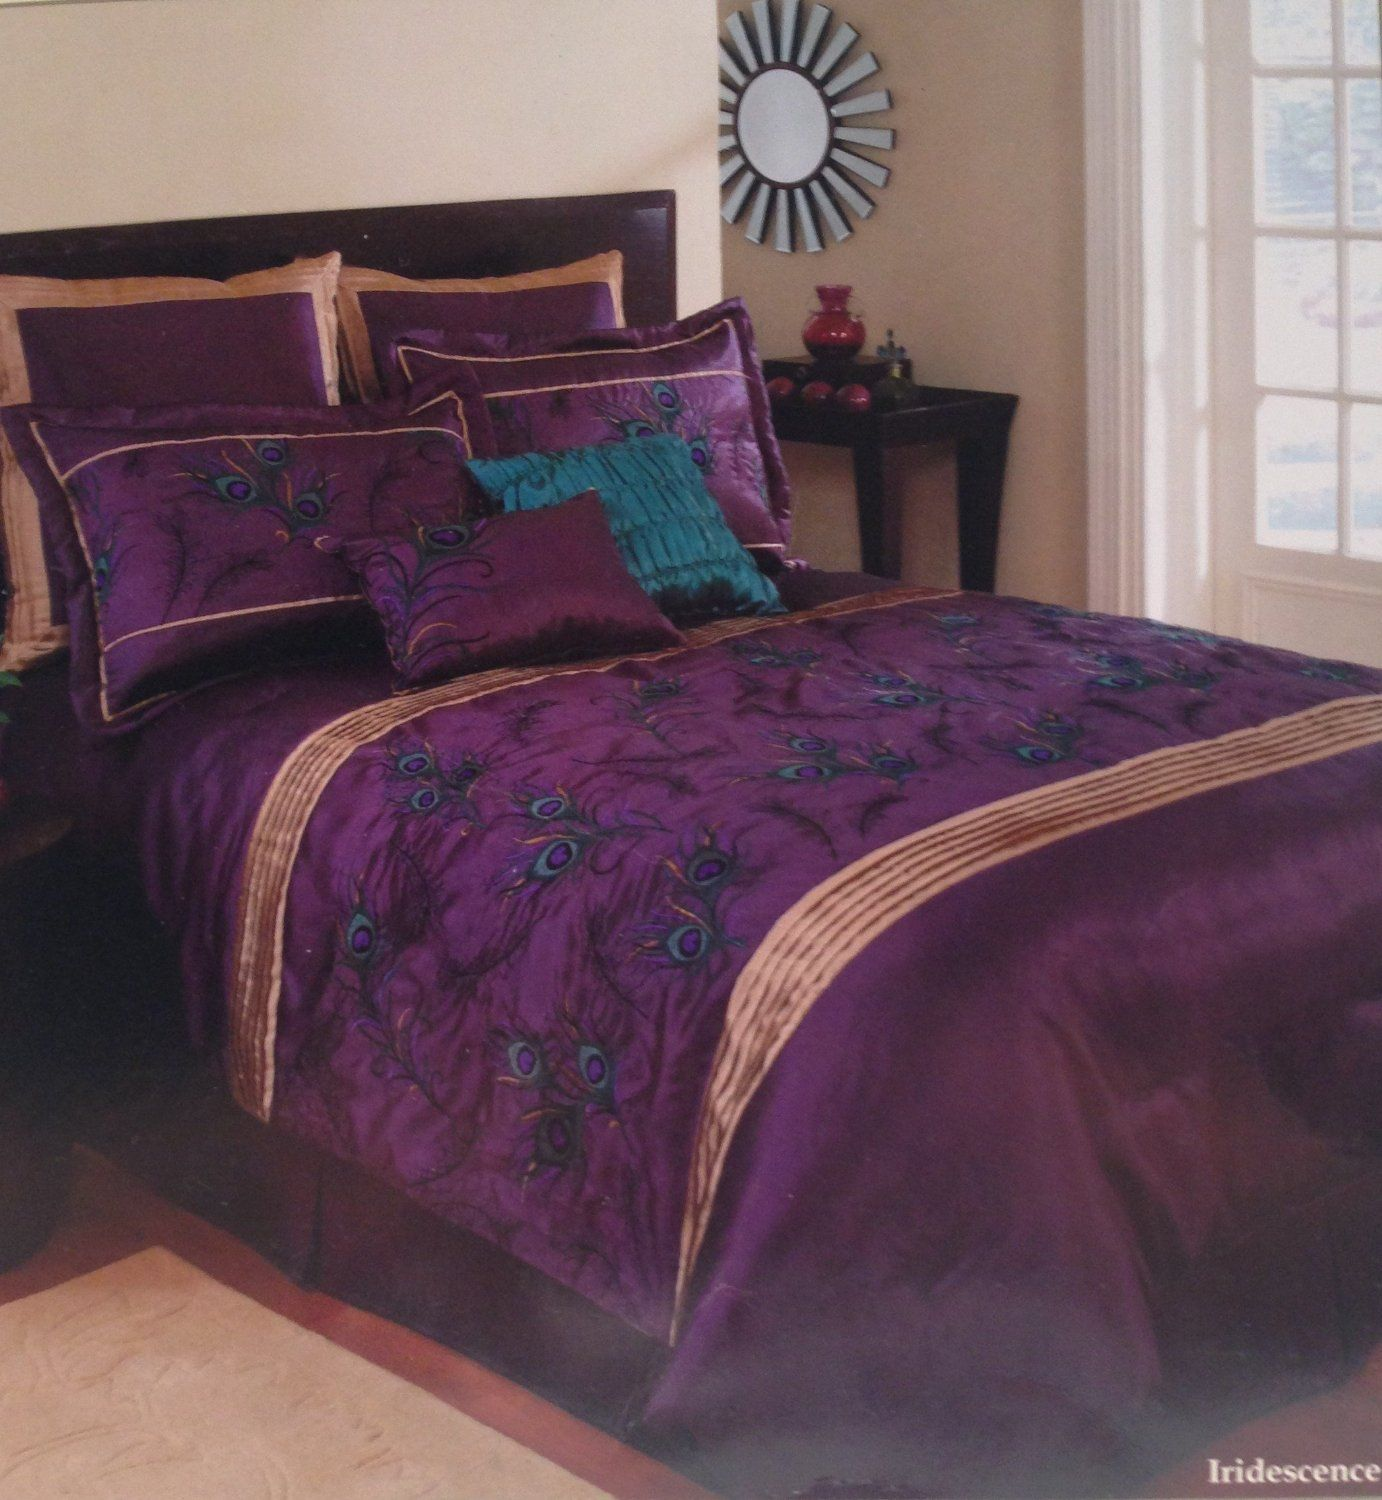 Extreme linen iridescence plum peacock 8 piece embroidered cal king comforter set - Peacock bedspreads ...